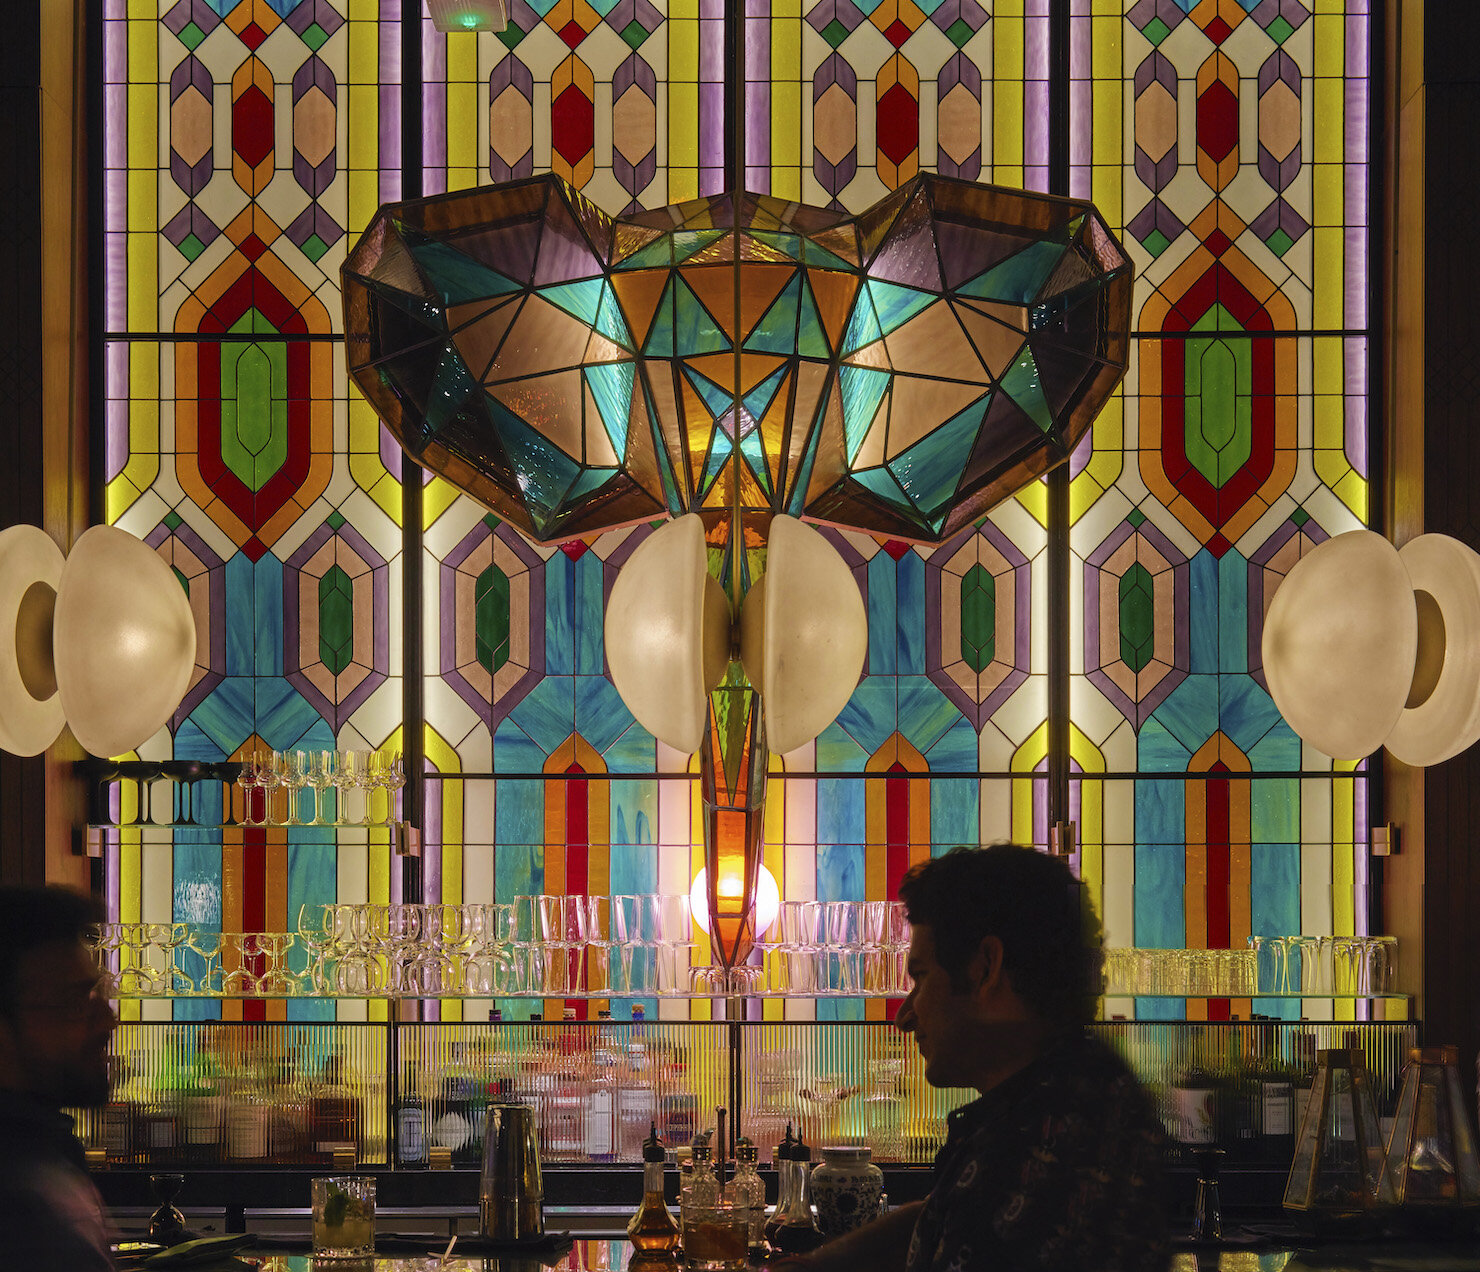 Design details of the stained-glass elephant bar.